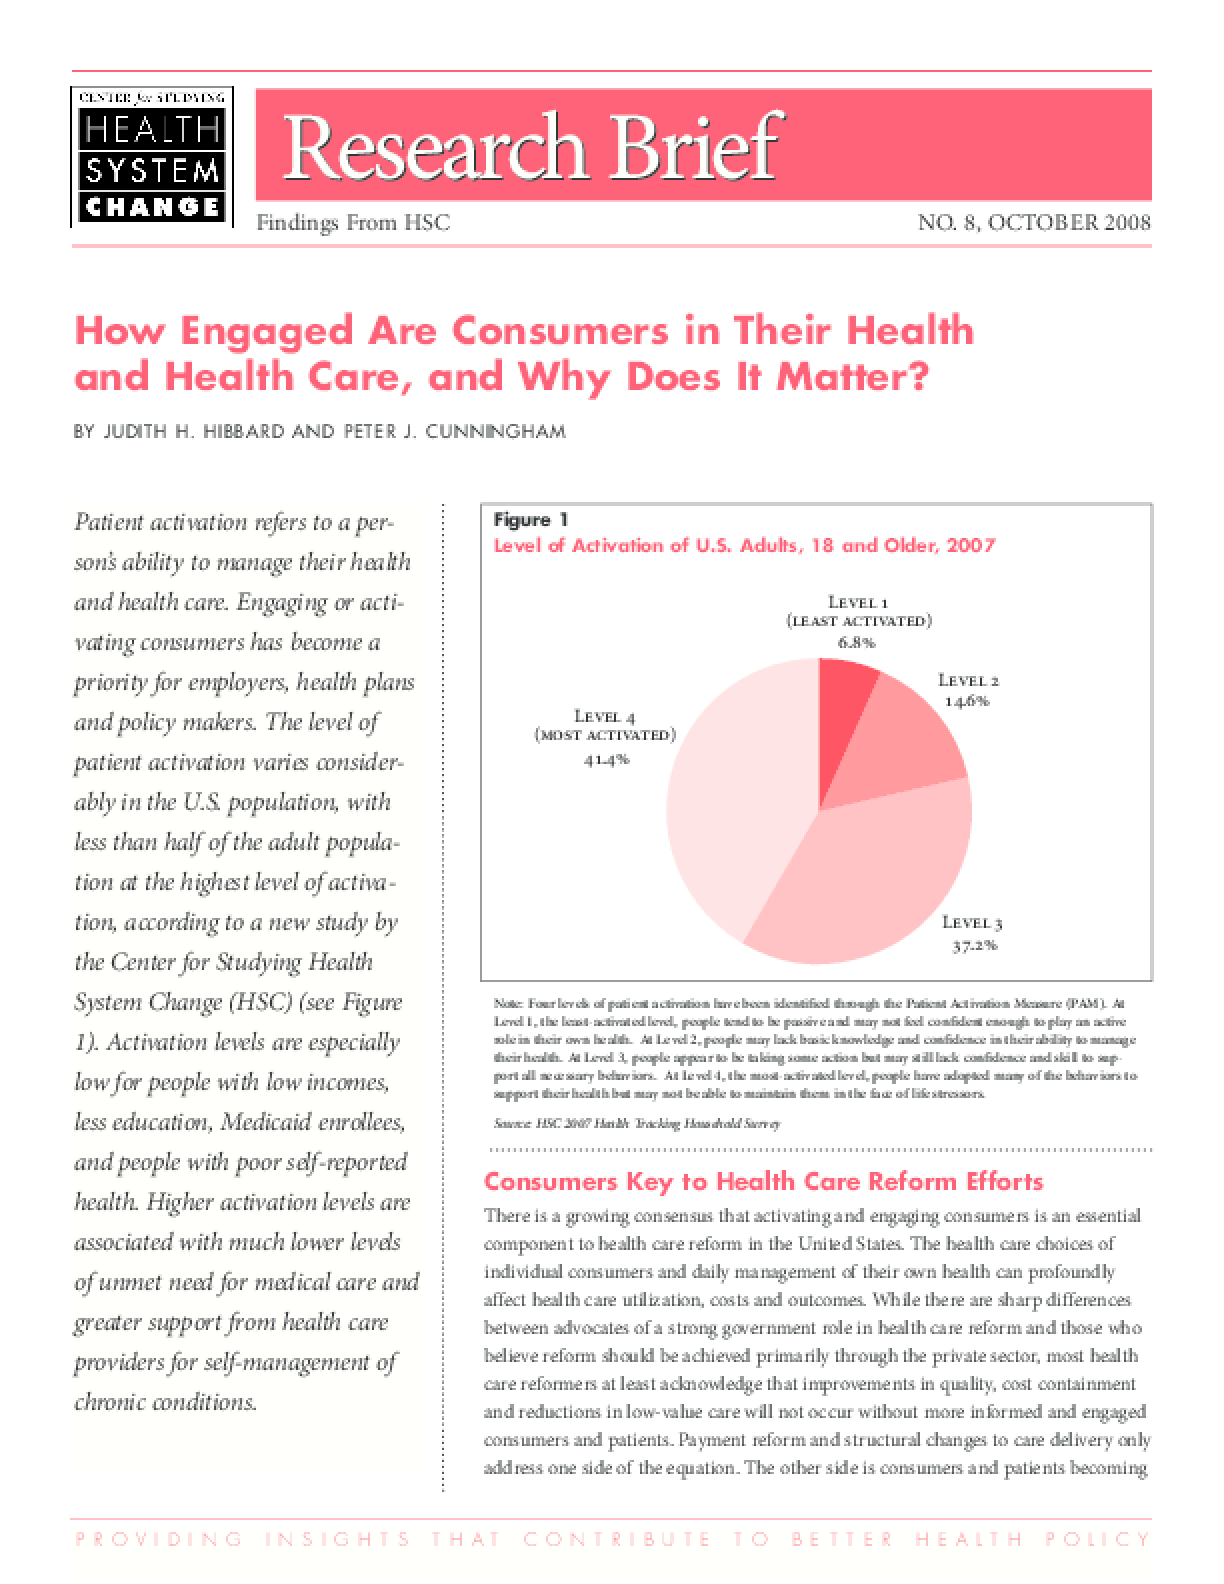 How Engaged Are Consumers in Their Health and Health Care, and Why Does It Matter?